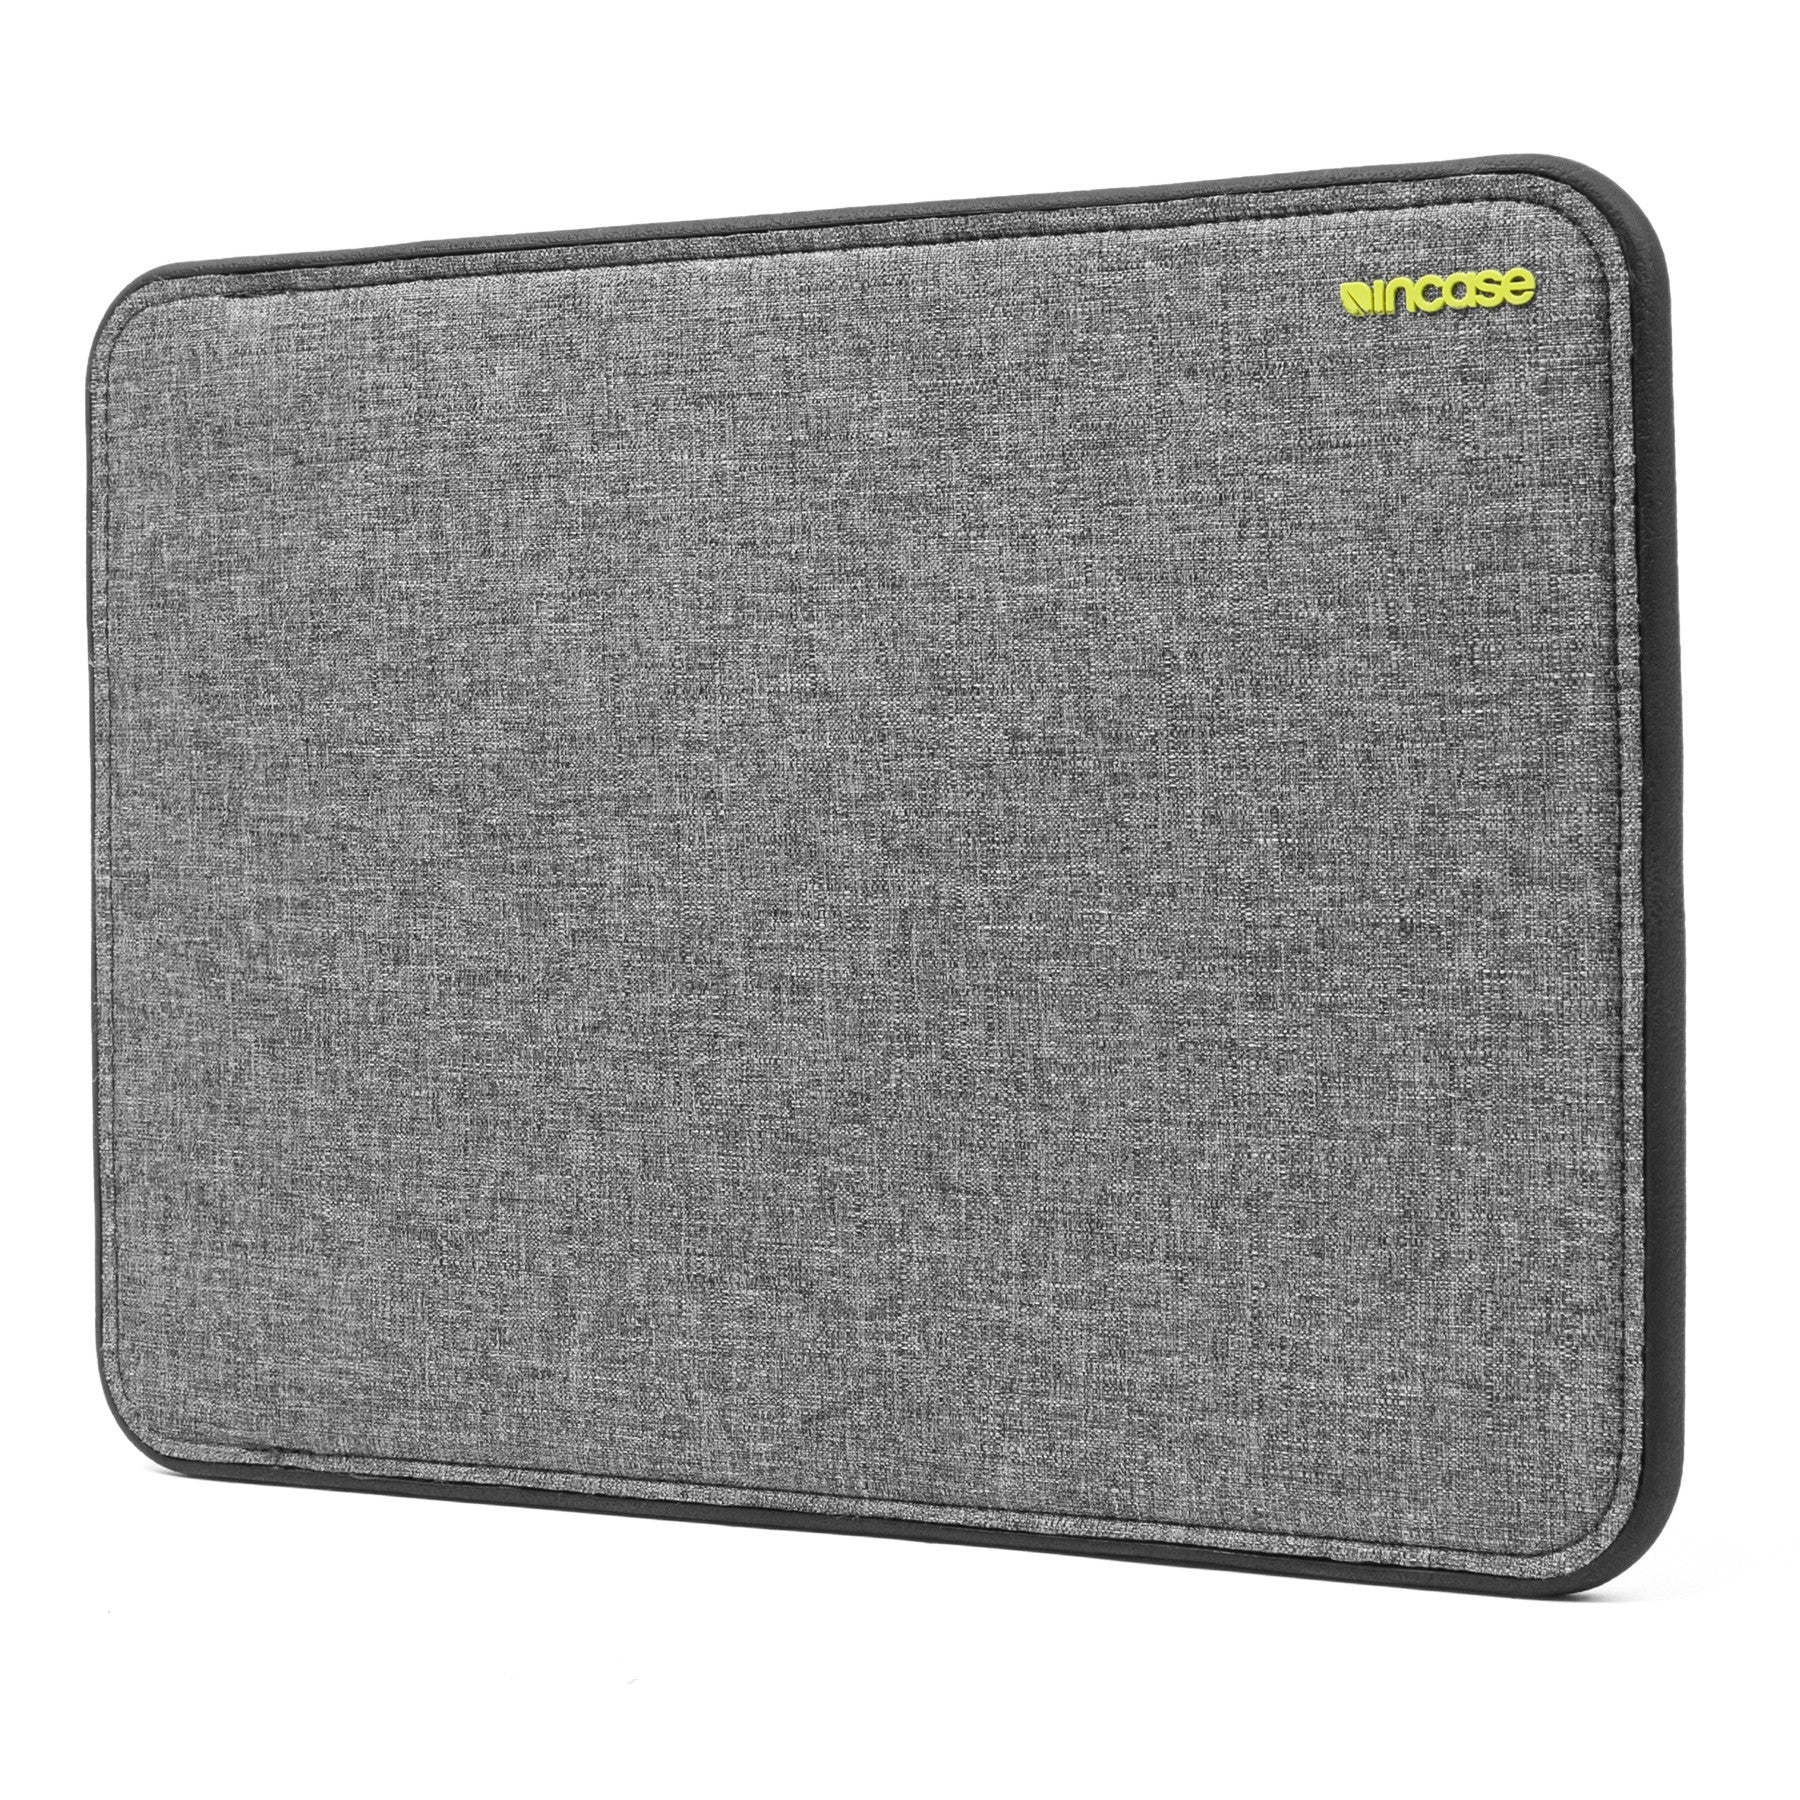 new concept 0bd34 ef9ce Incase - ICON Sleeve with TENSAERLite for Macbook Pro 13 inch